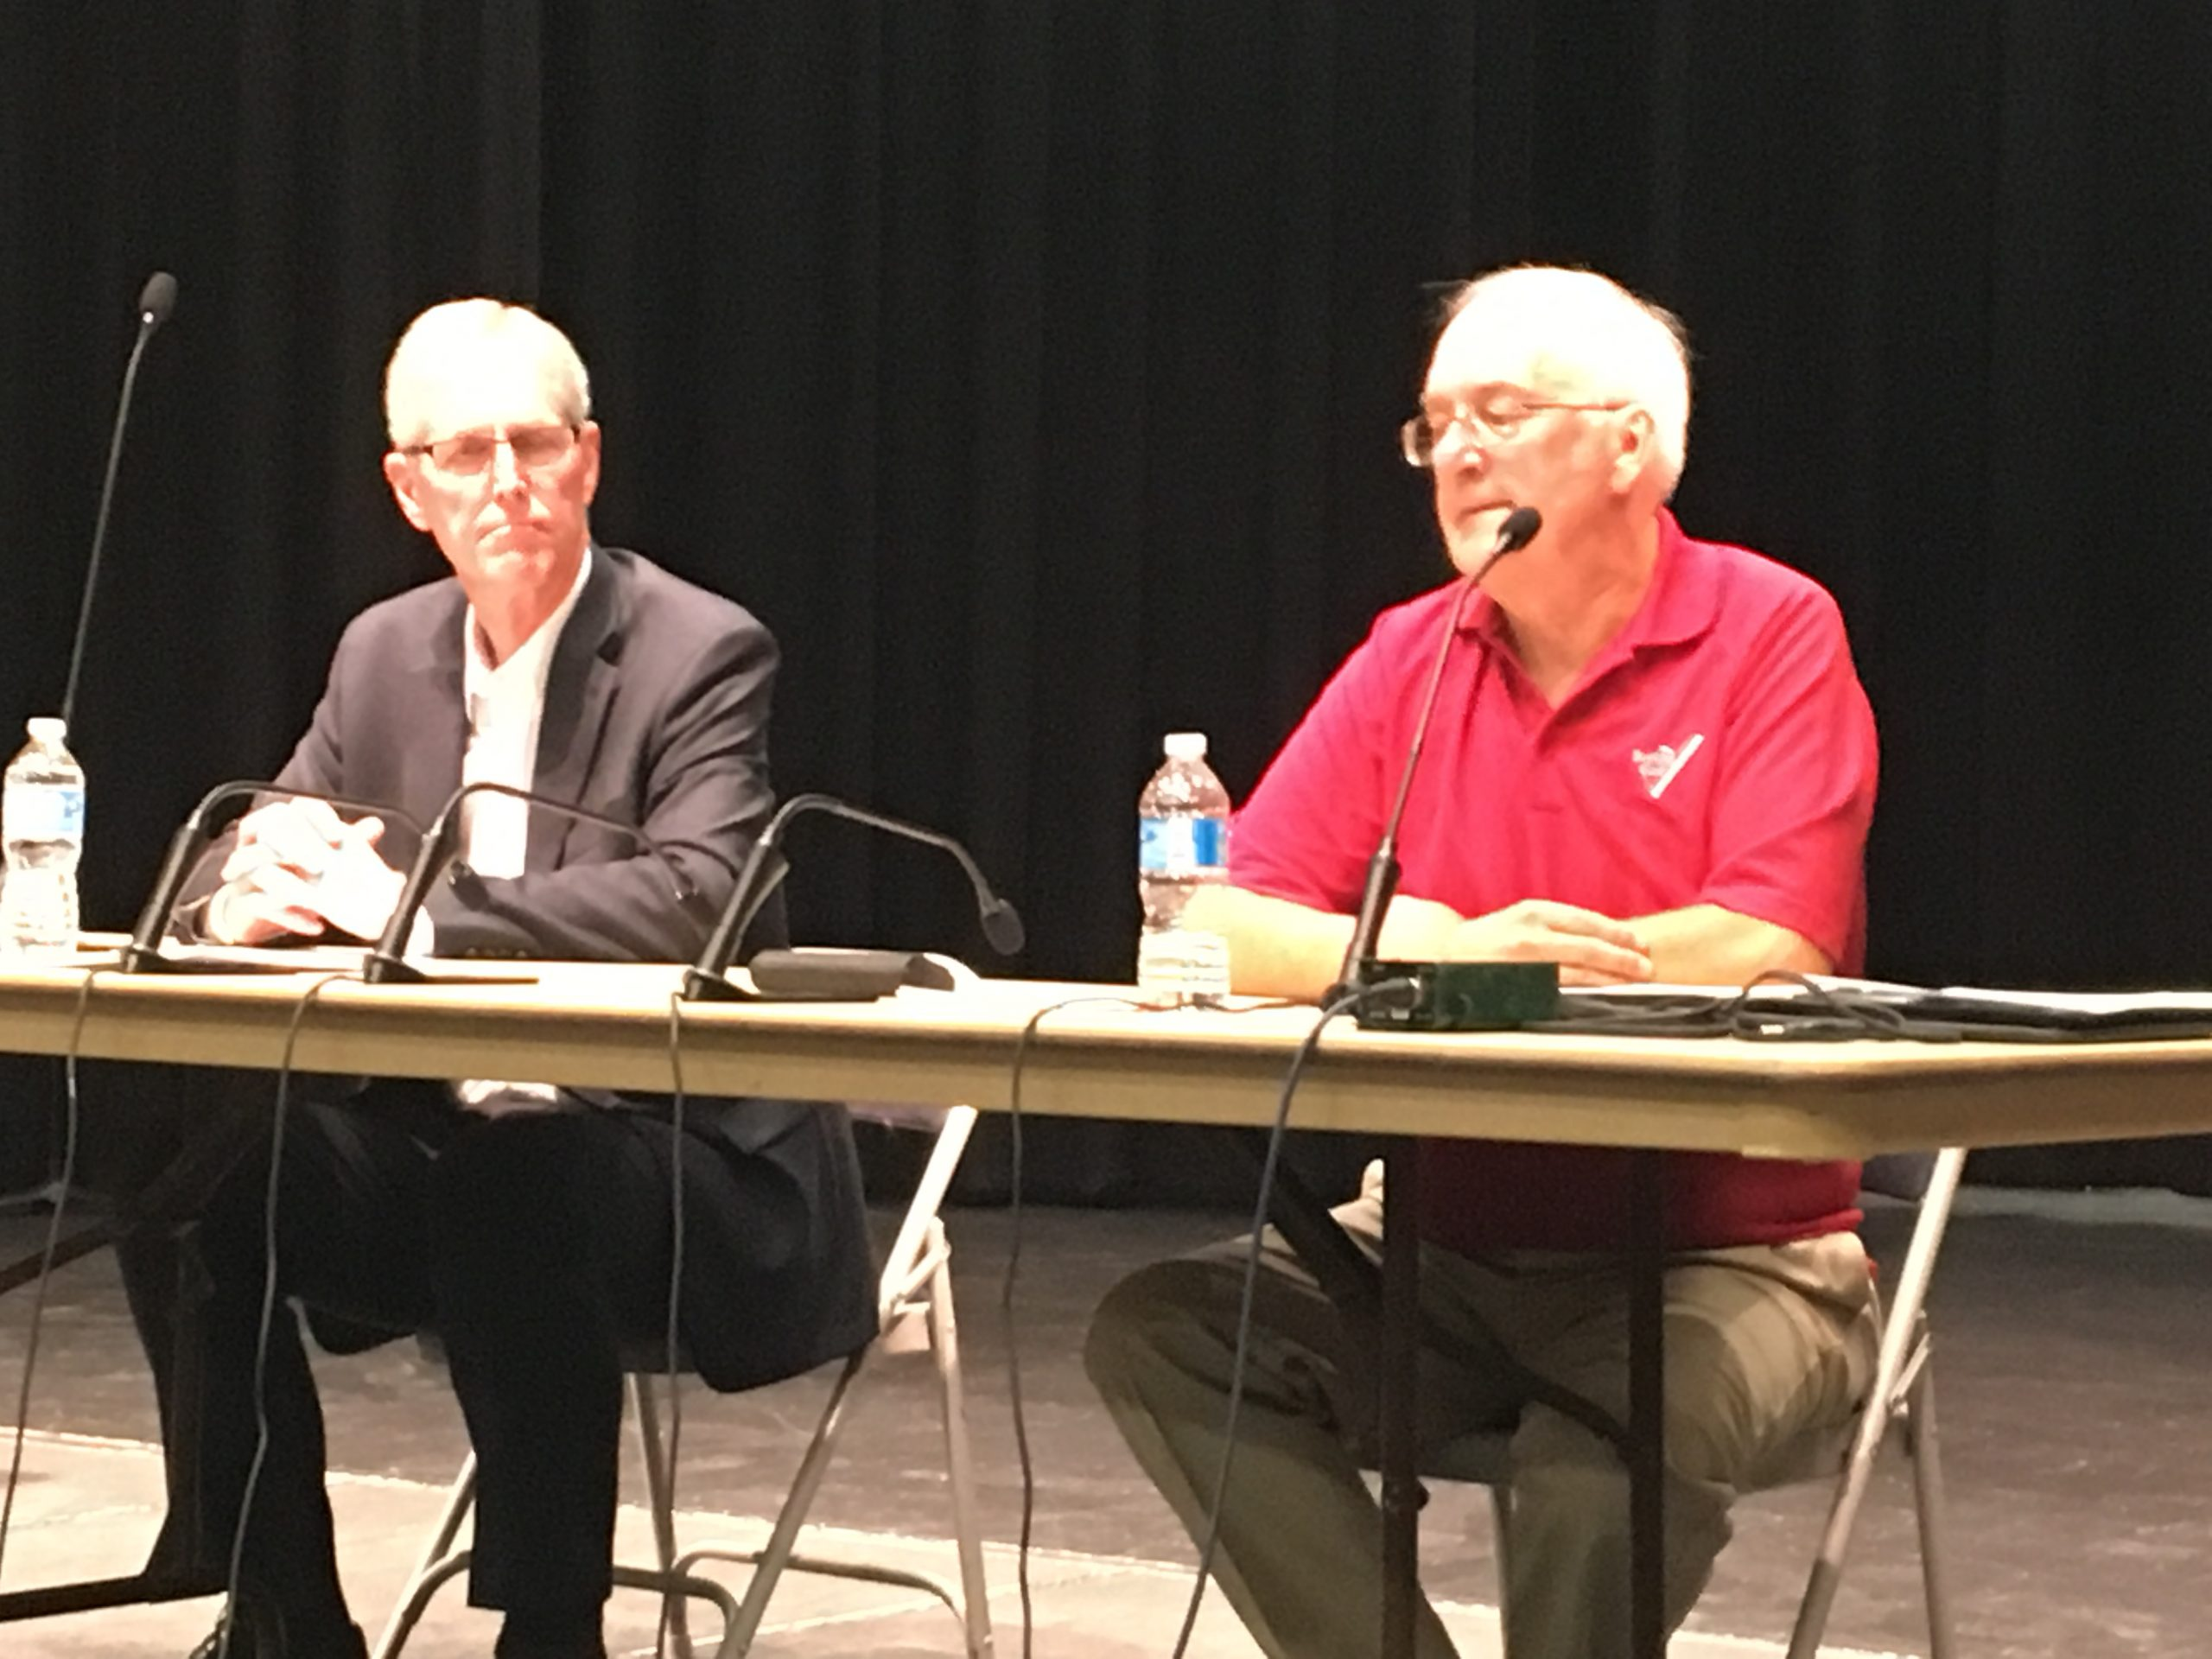 Kimberley mayoral candidates see eye-to-eye on housing concerns at forum